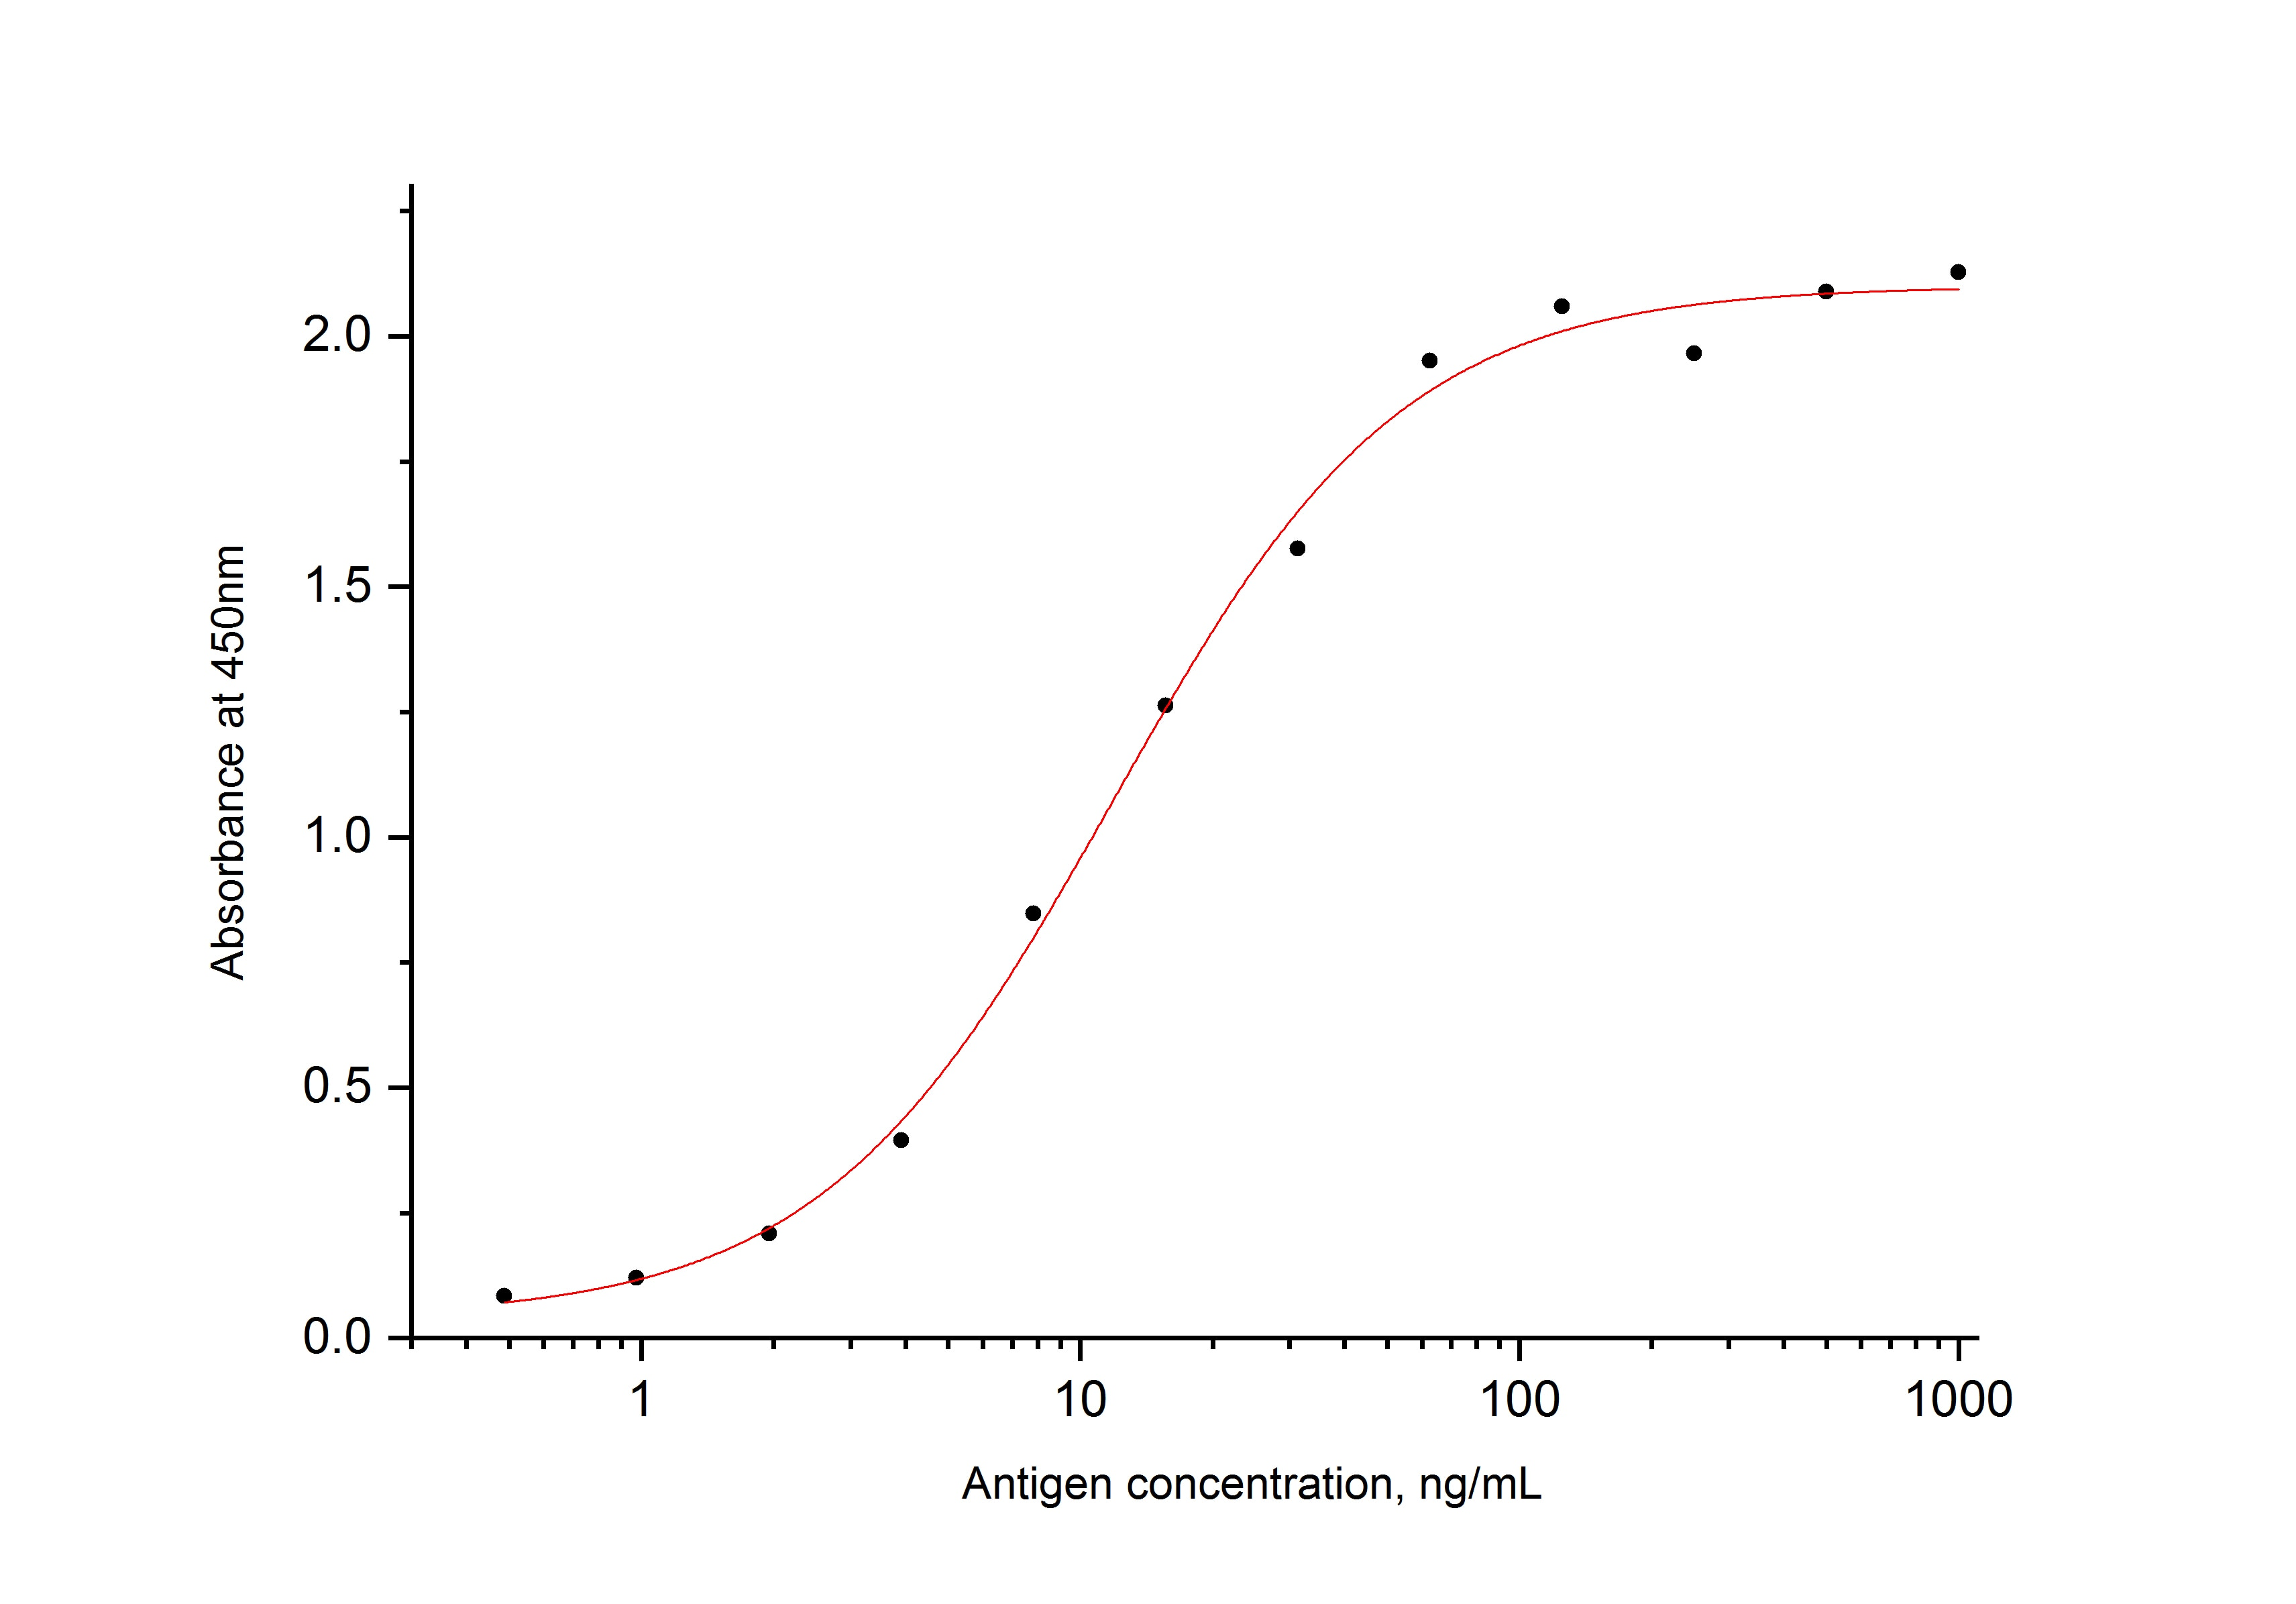 ELISA experiment of Recombinant protein using 67666-1-Ig